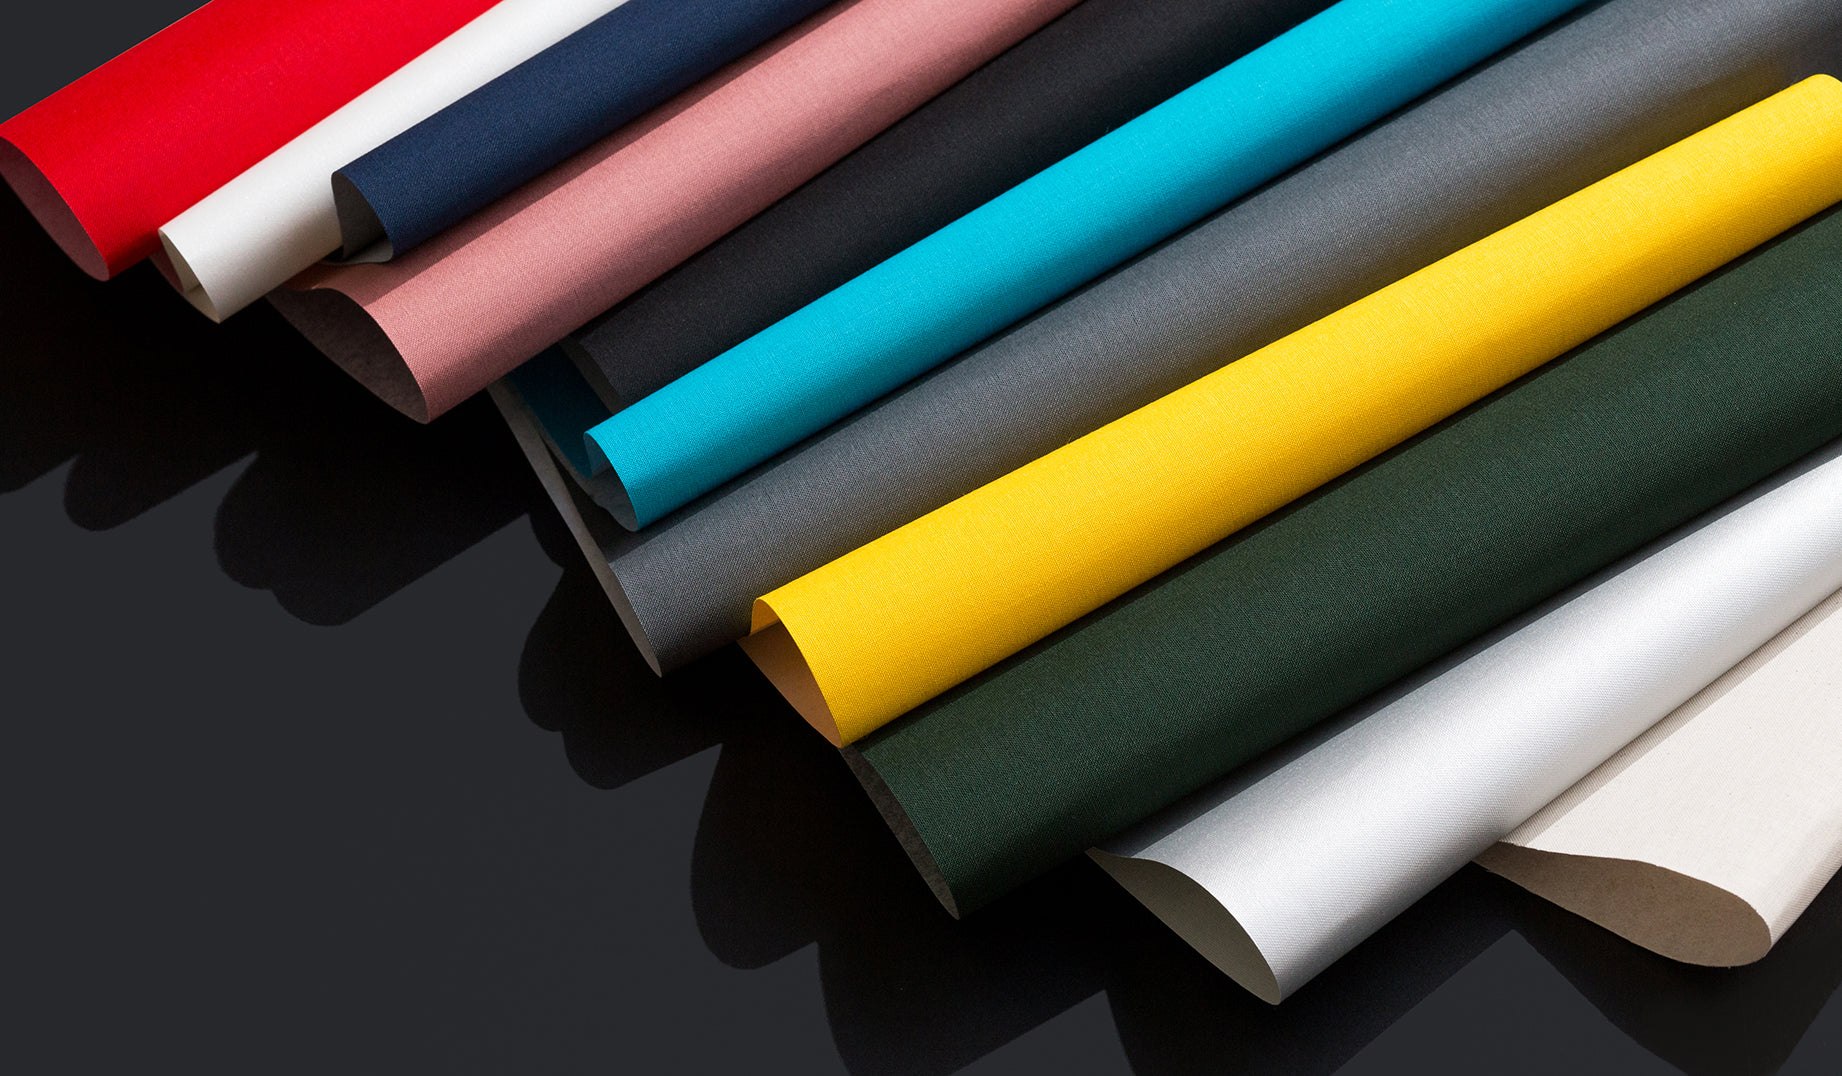 Paper Chase Press uses only premium American-made linen for all of its handmade hardcovers. Choose from black, charcoal gray, royal blue, or natural white.